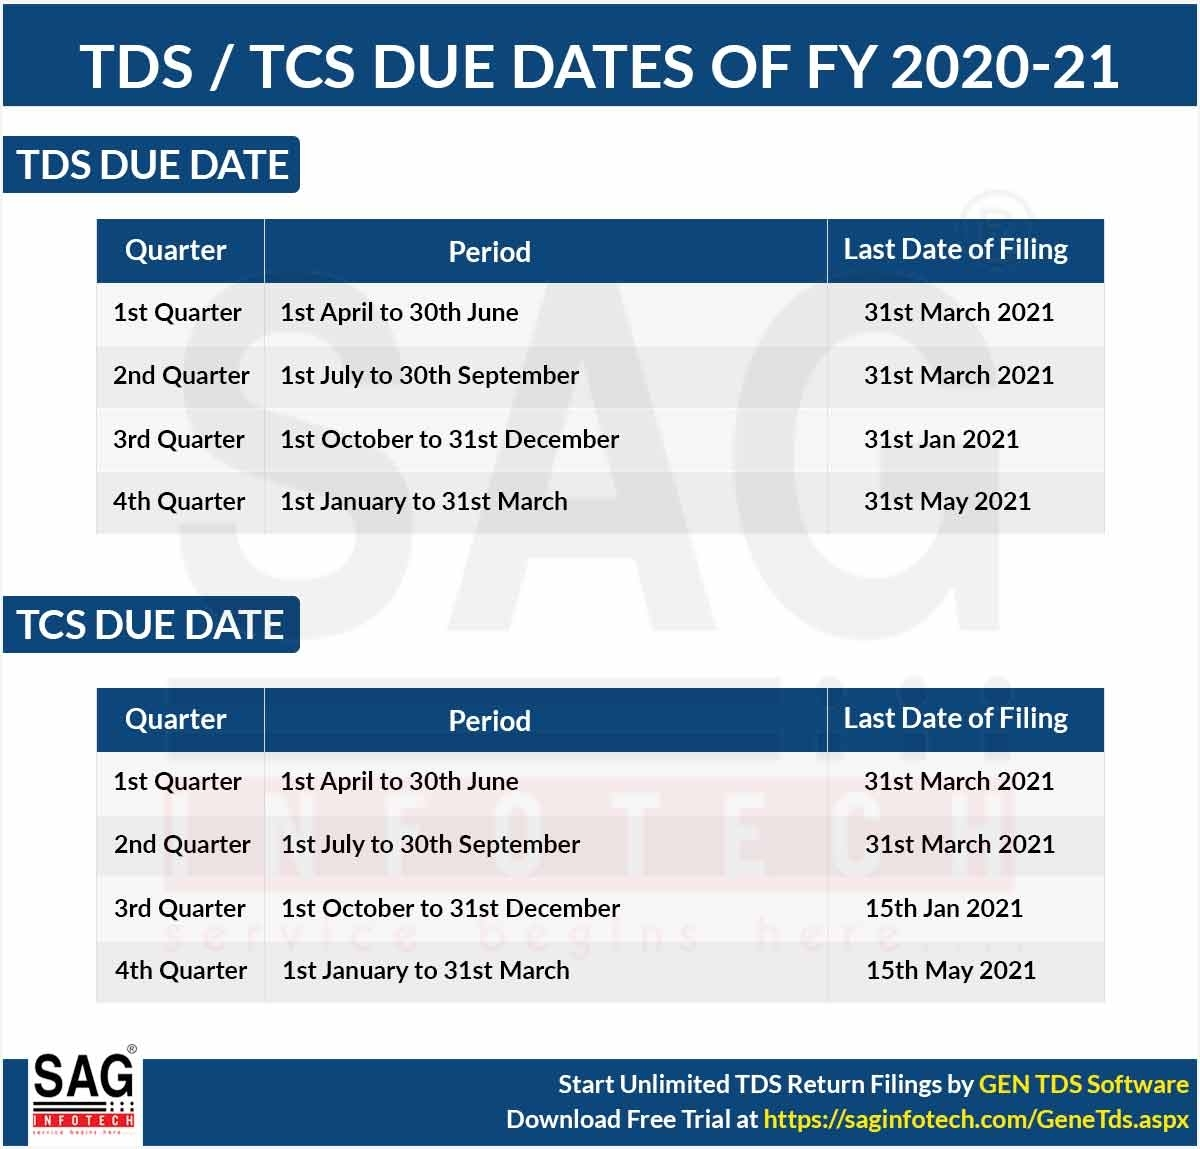 Due Dates For E-Filing Of Tds/Tcs Return Ay 2020-21 (Fy 2019